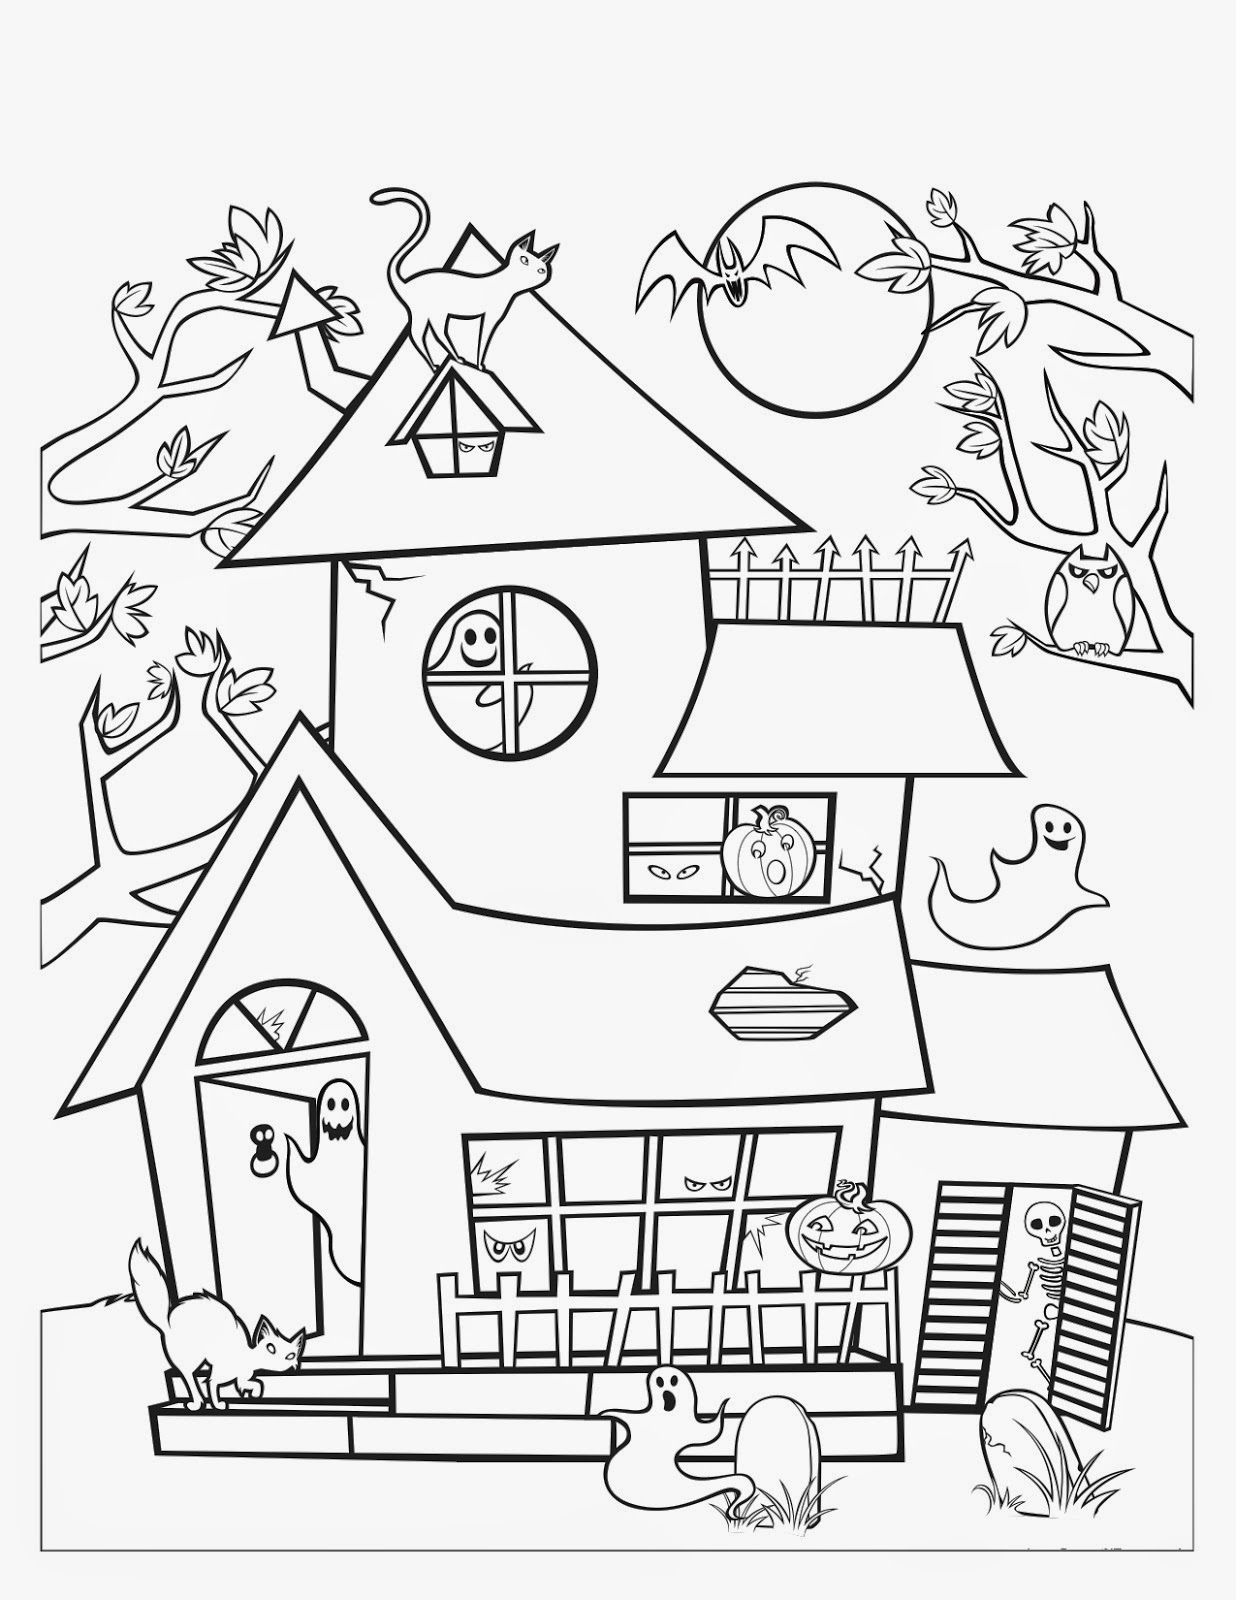 House Pictures Drawing At Getdrawings